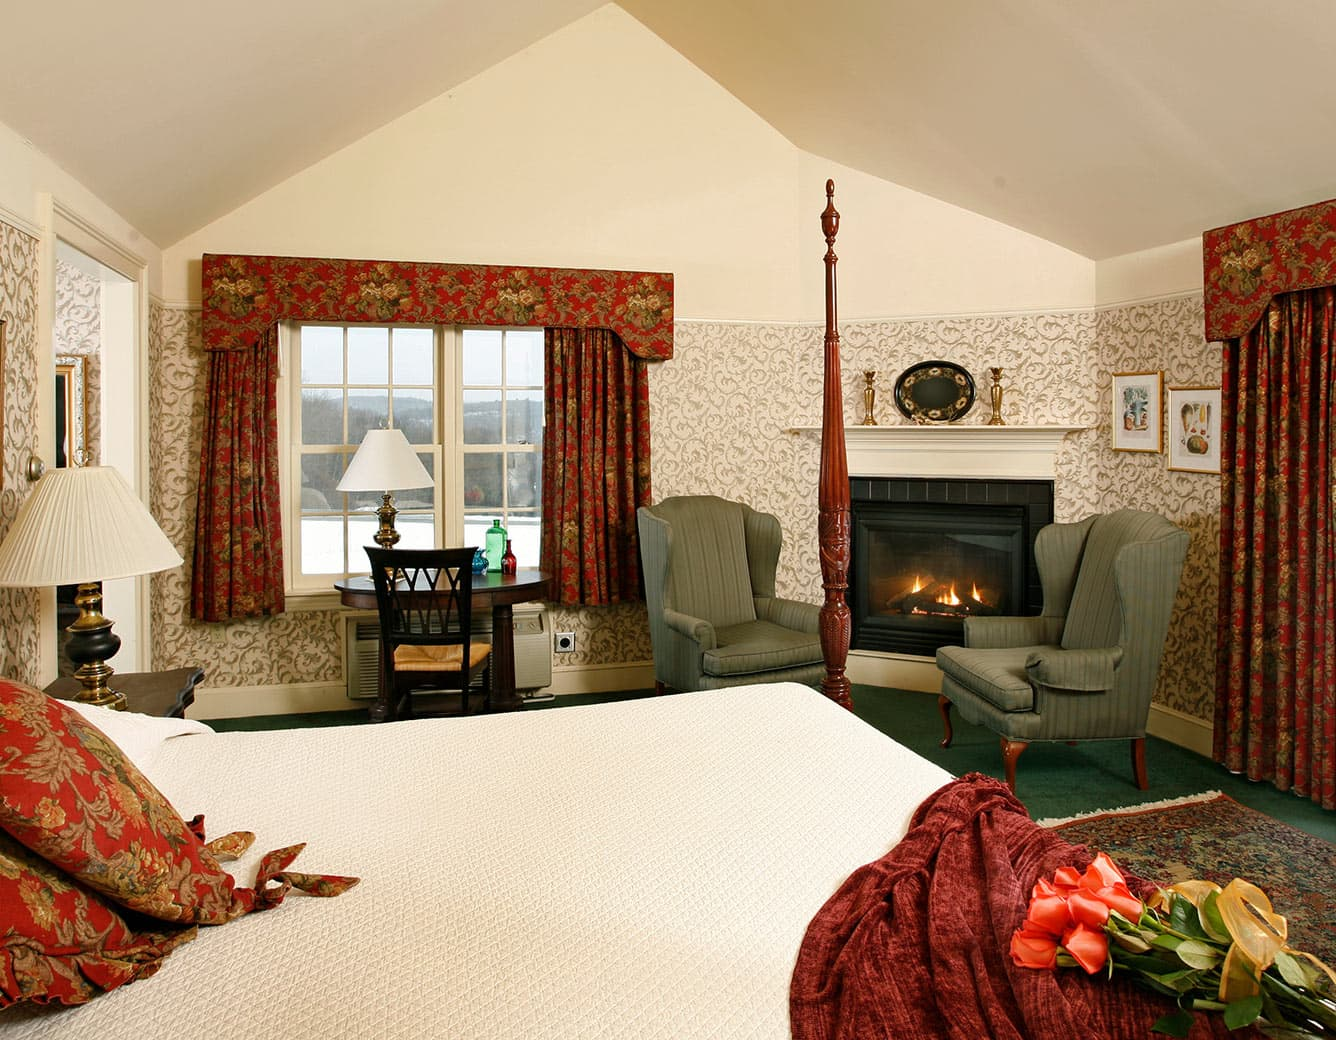 Bed, Fireplace, sitting chairs in Room 20